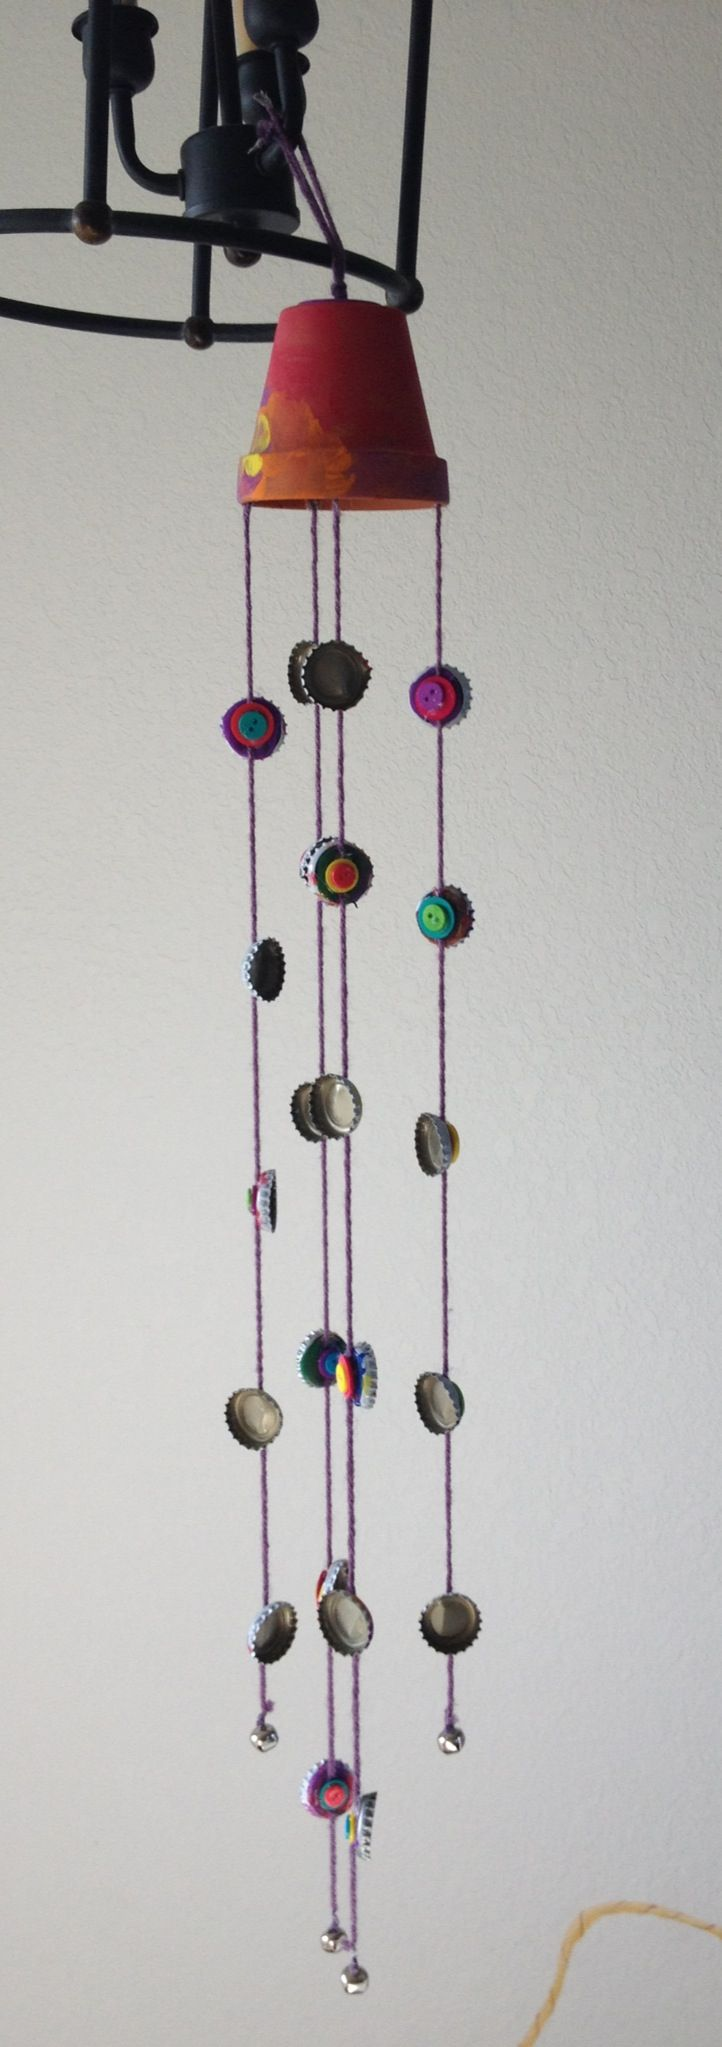 Best 25 homemade wind chimes ideas on pinterest for Easy to make wind chimes